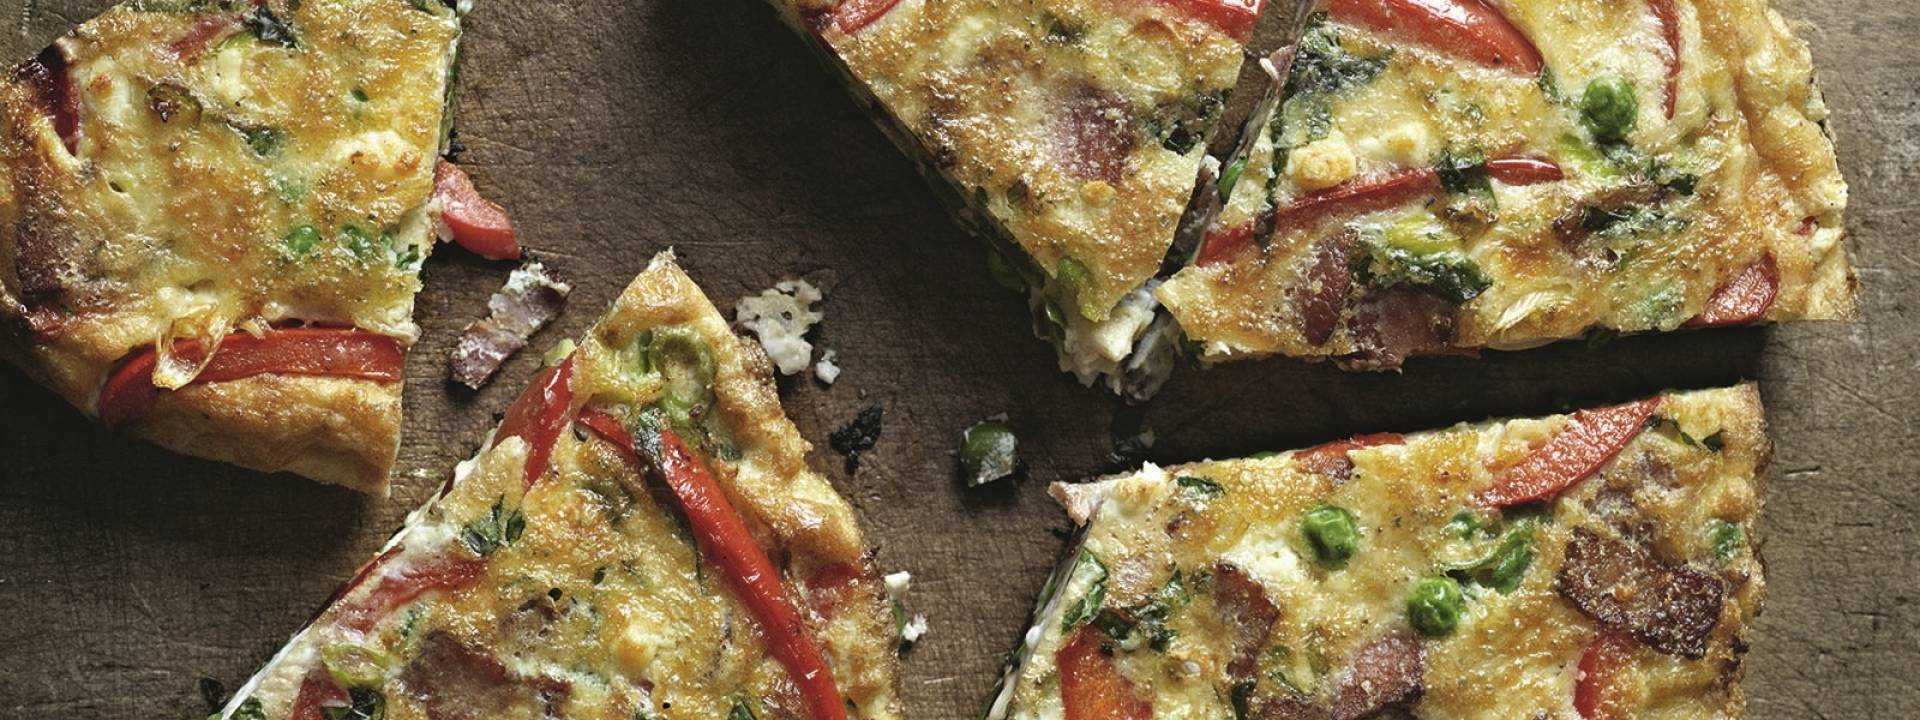 Bacon, Pea and Goat cheese Frittata